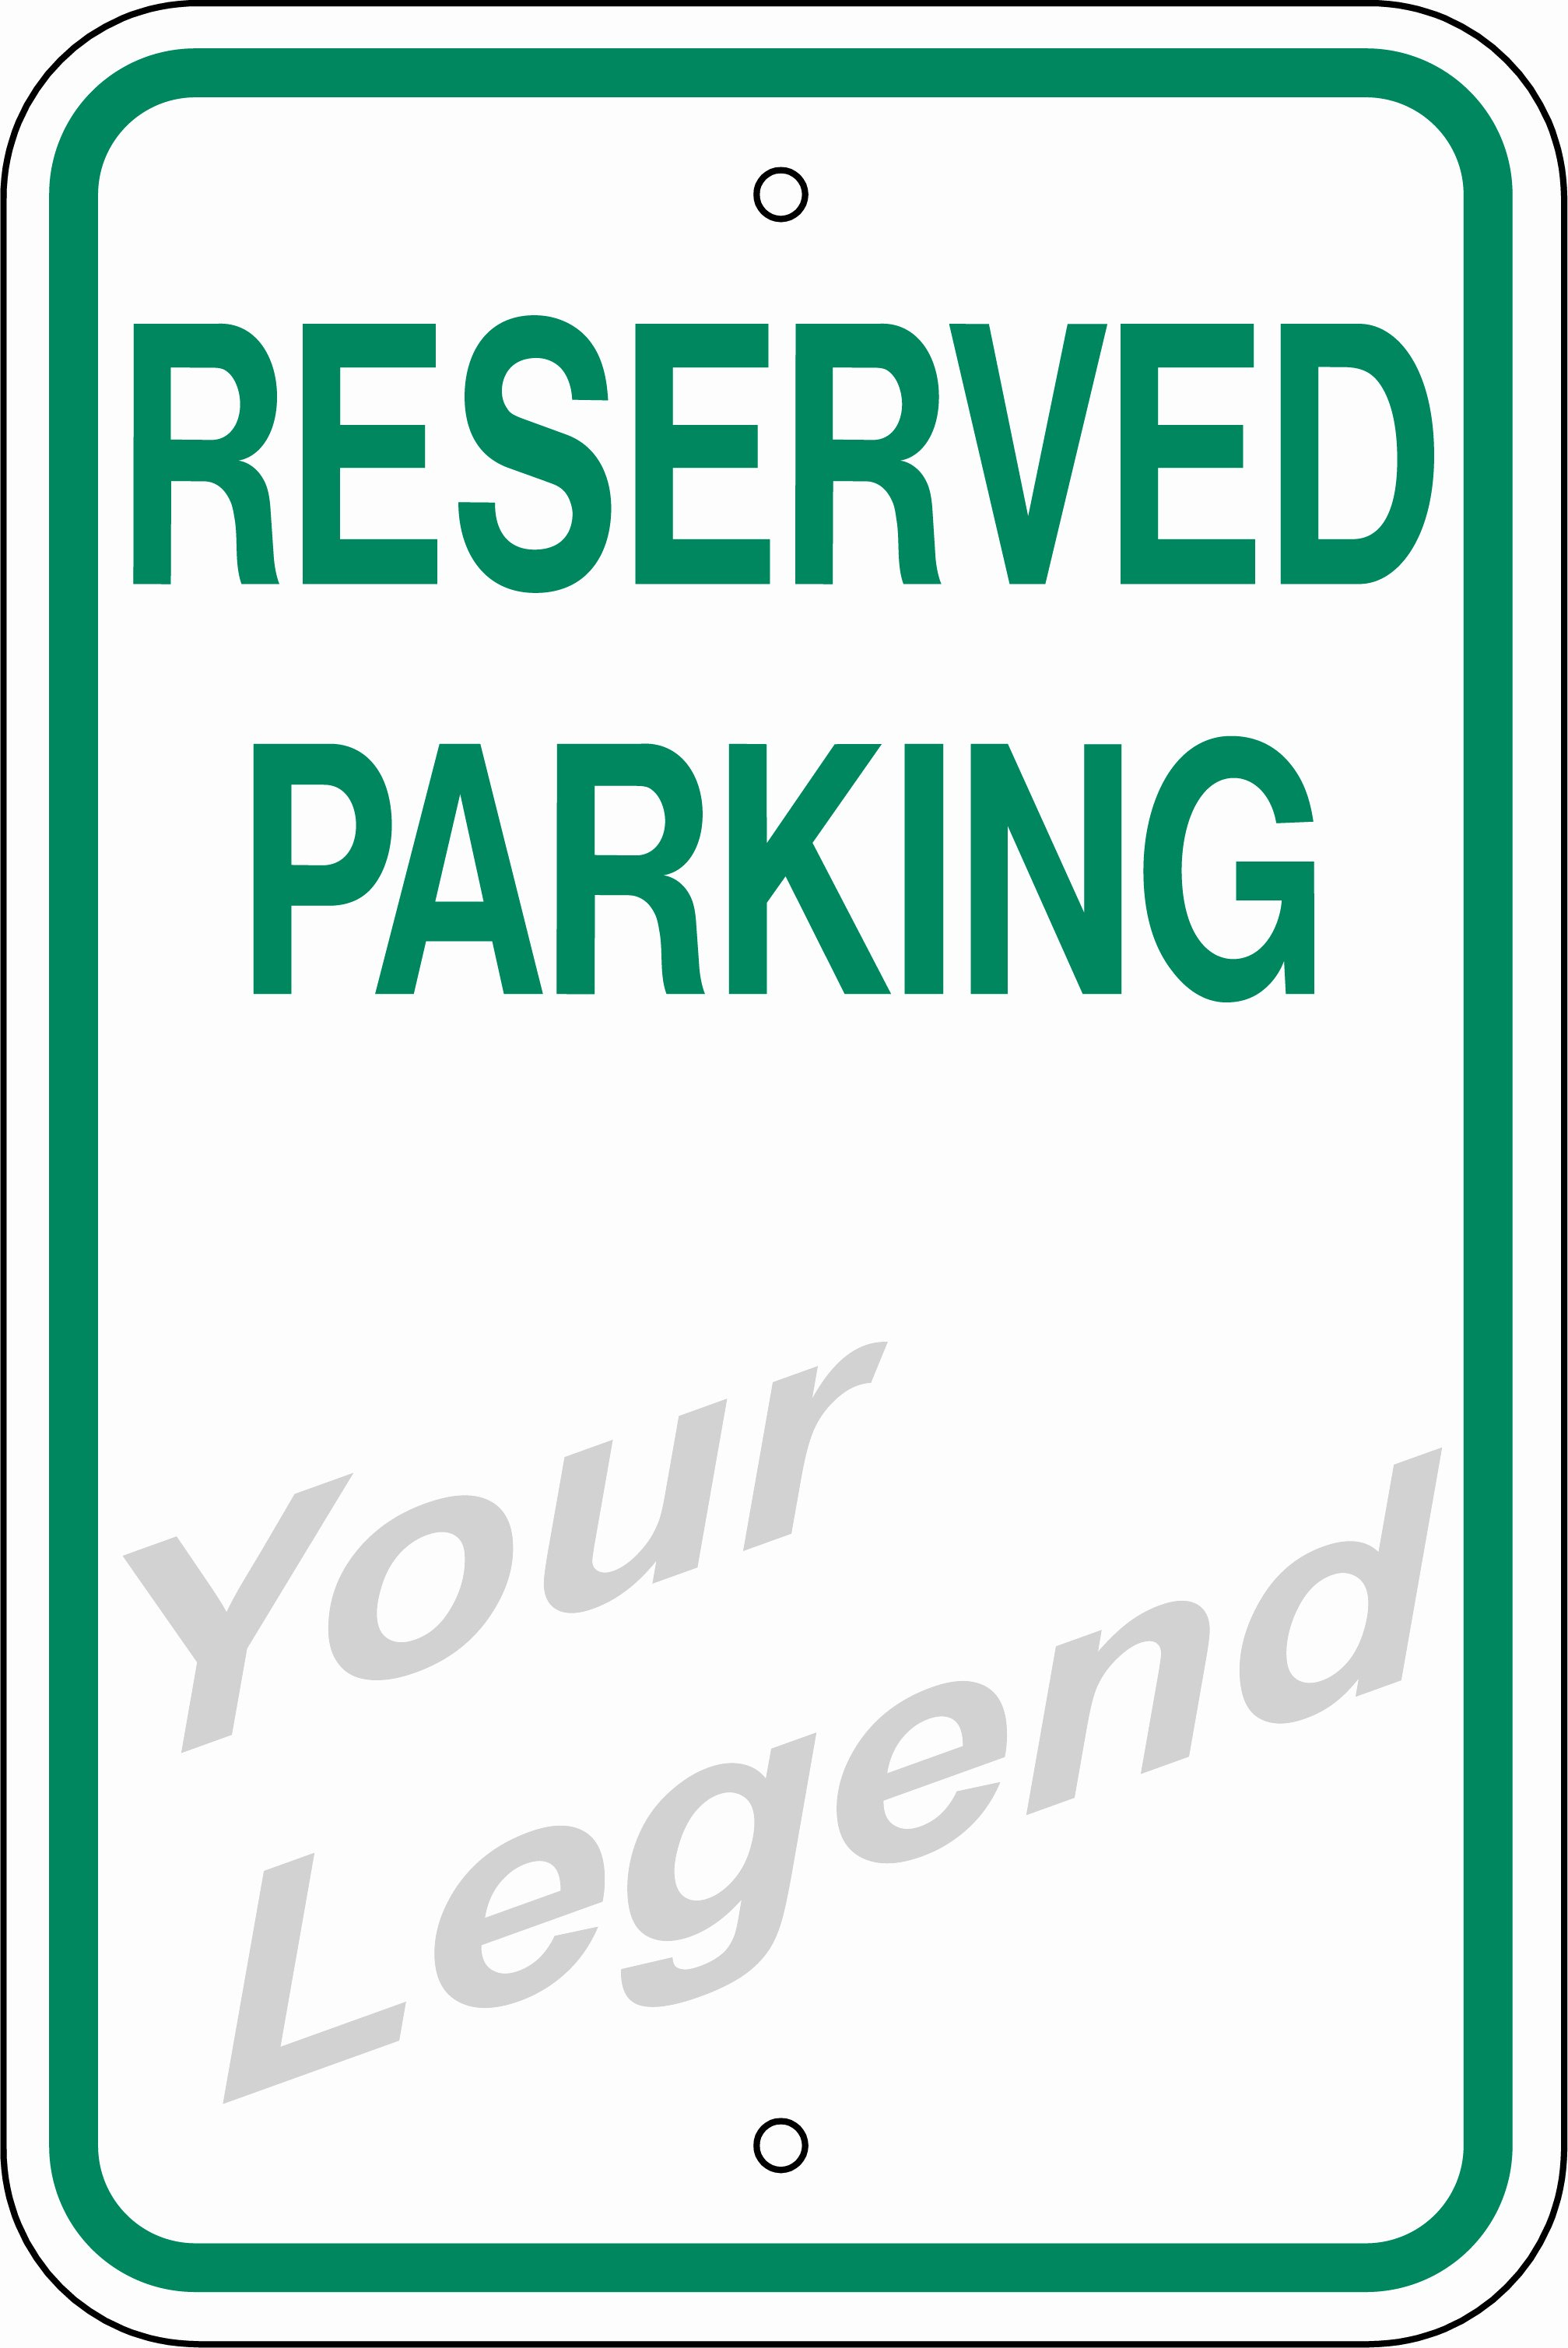 Reserved Parking Reverse Search